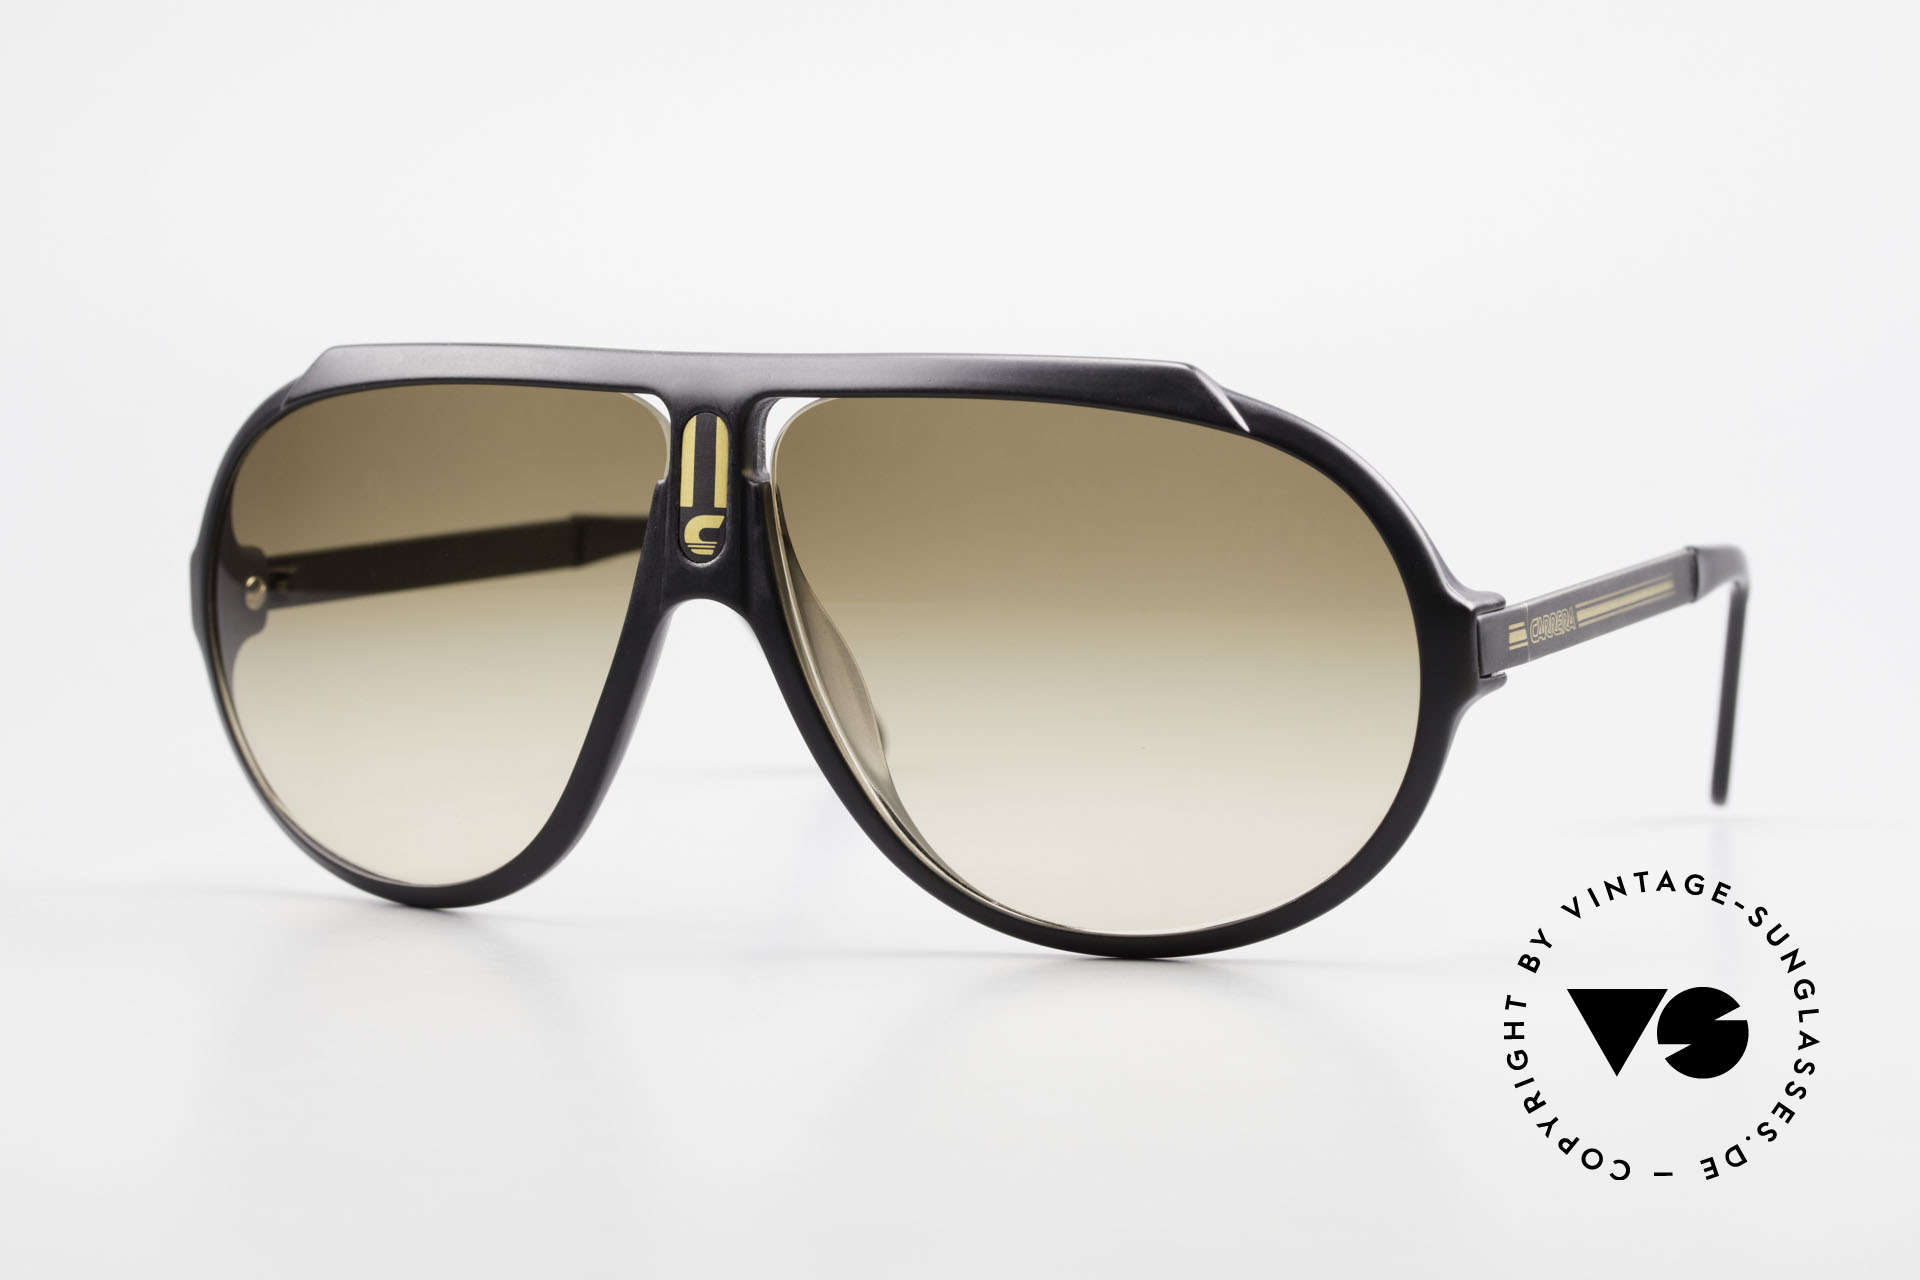 Carrera 5512 Most Wanted Carrera 5512, legendary 1980's vintage CARRERA designer sunglasses, Made for Men